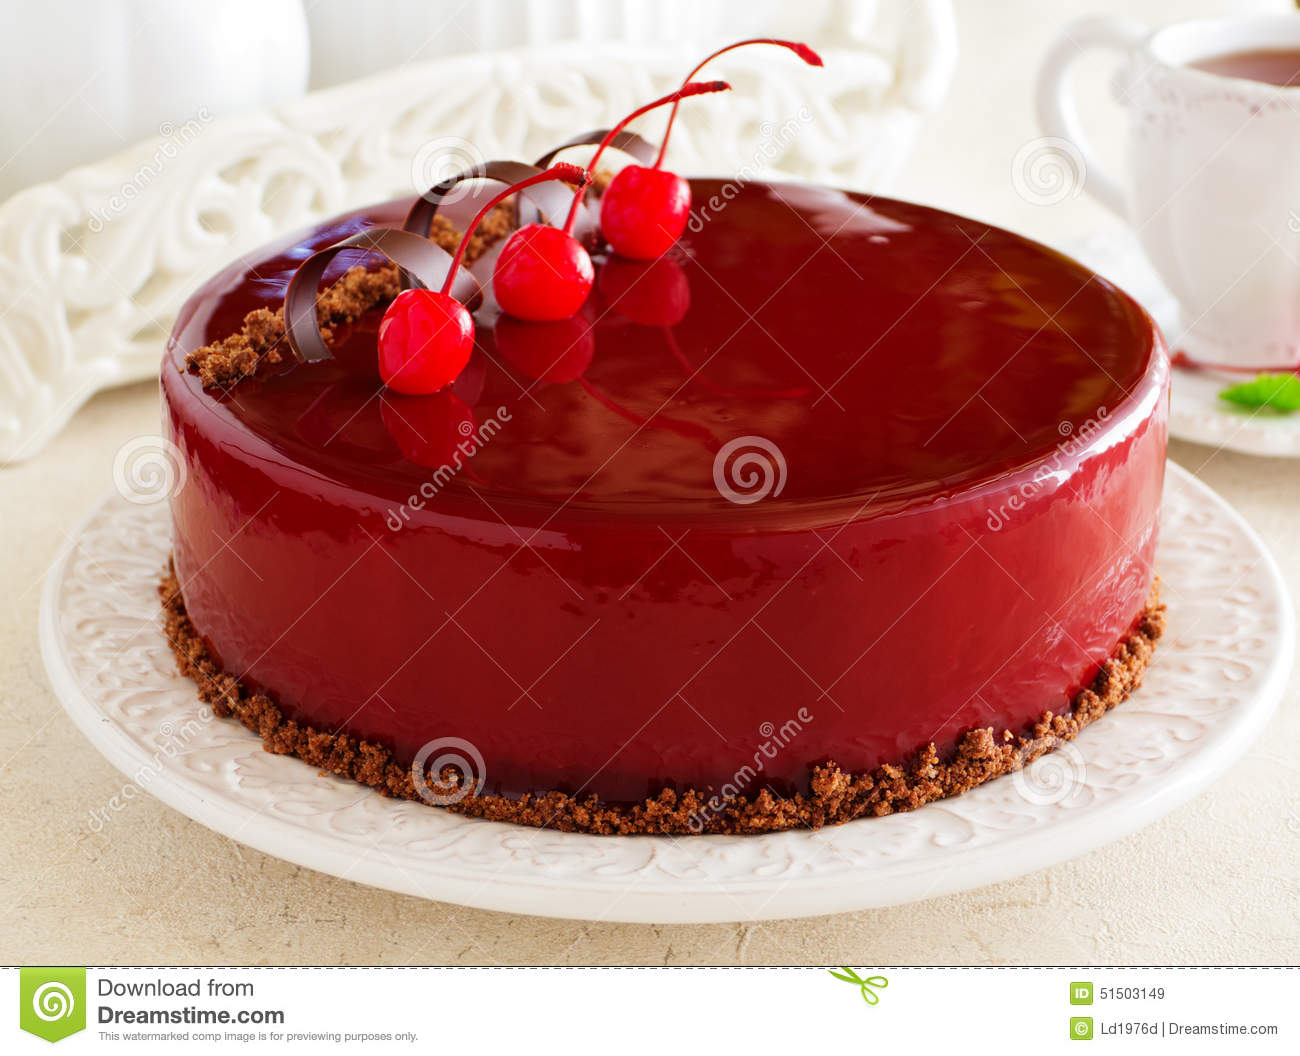 Chocolate Cherry Cake Covered Stock Photo - Image: 51503149